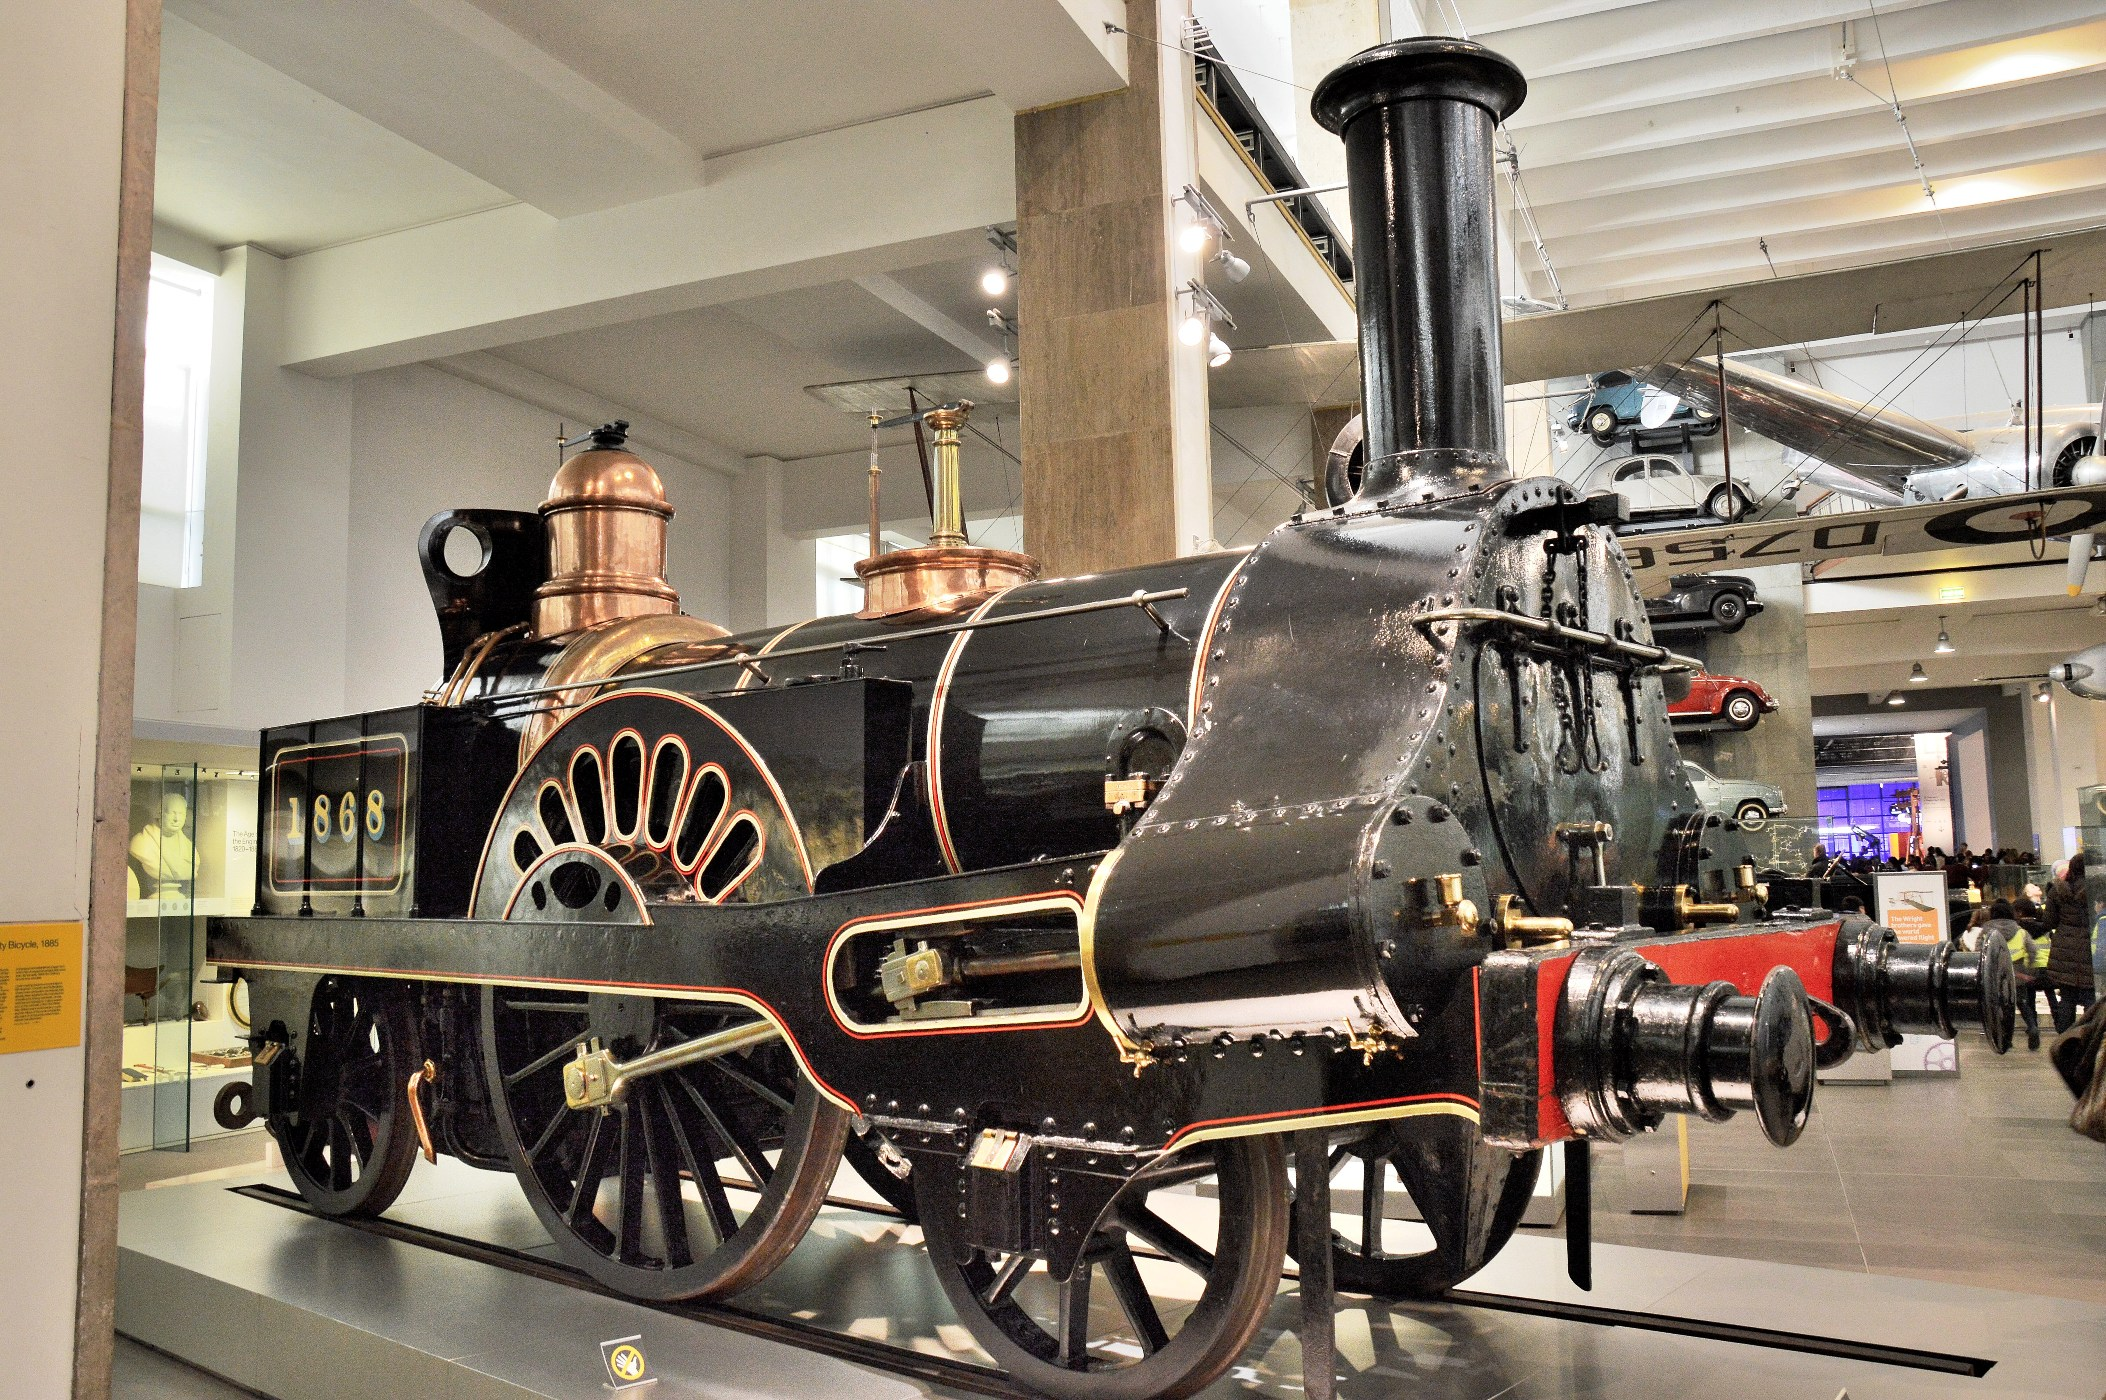 richard trevithick steam engine diagram richard get free image about wiring diagram